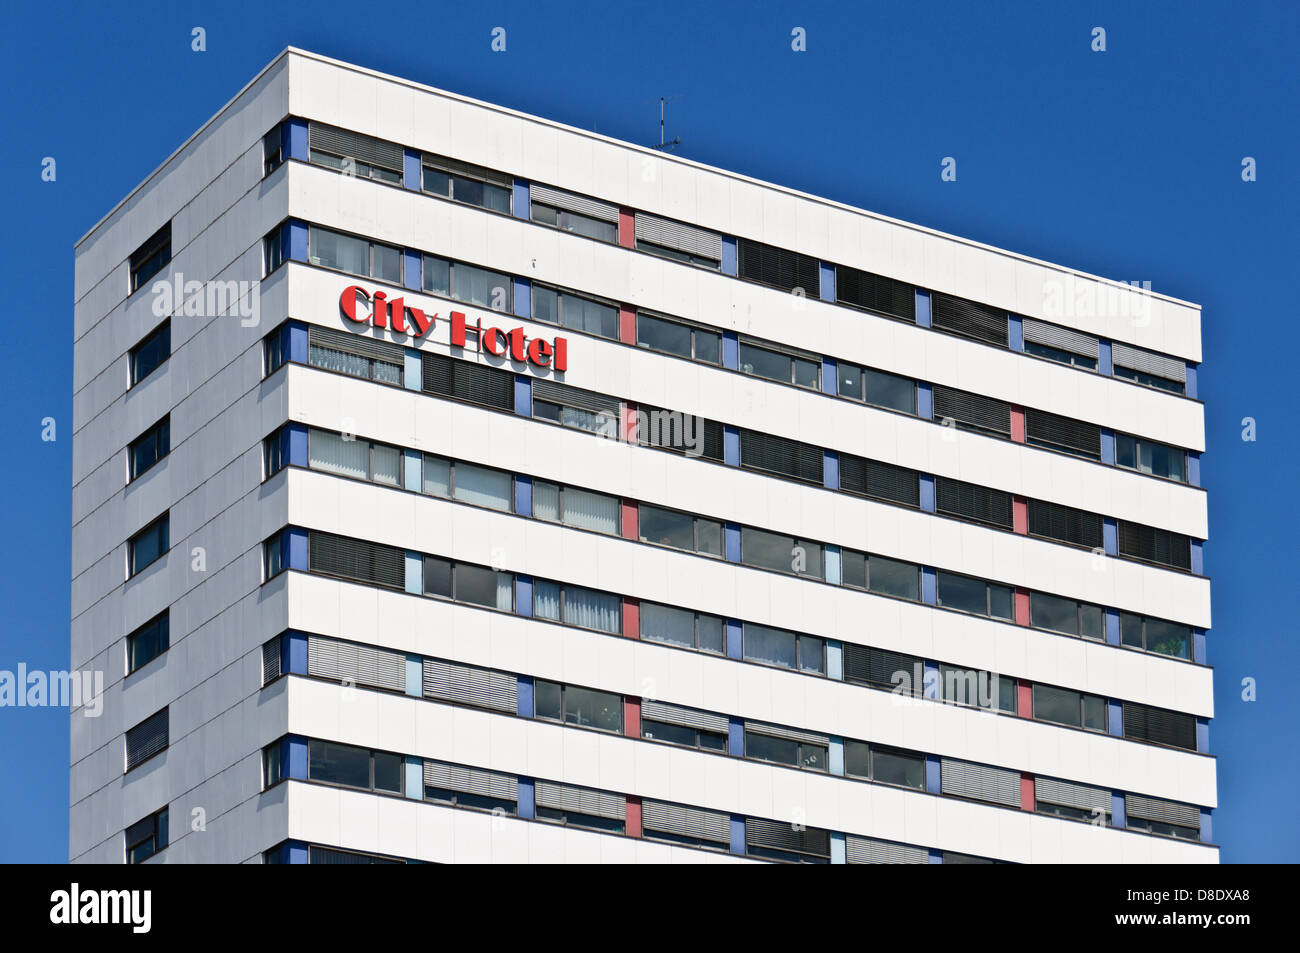 Functional building of the City Hotel in Heilbronn, Germany - Stock Image